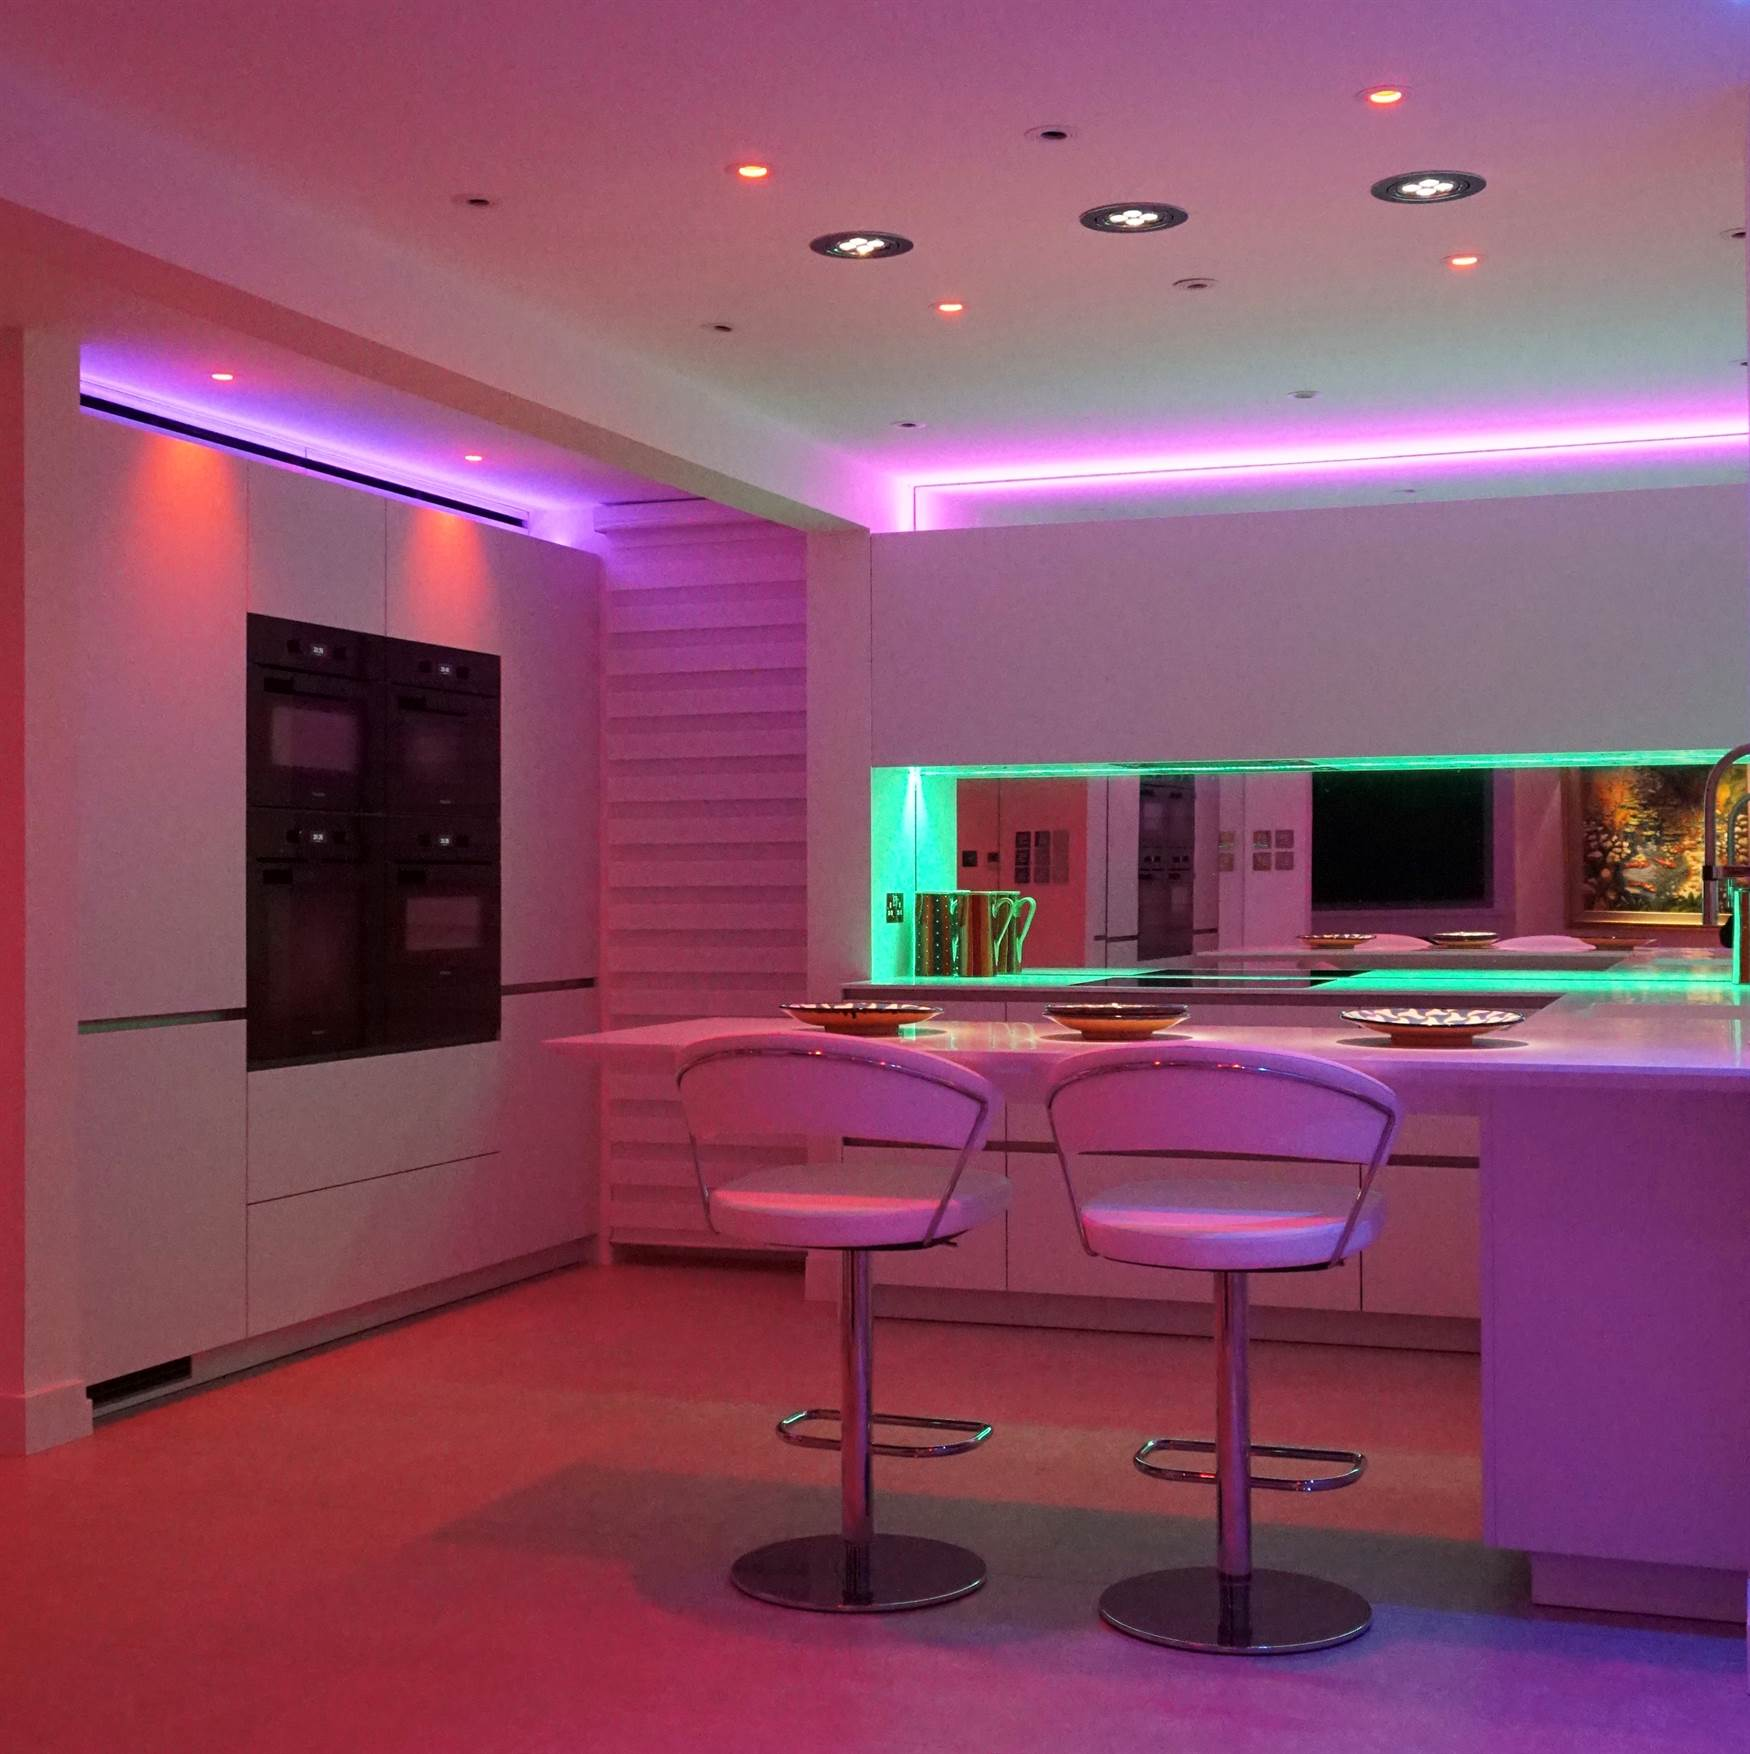 RGBW downlights and LED tape in kitchen